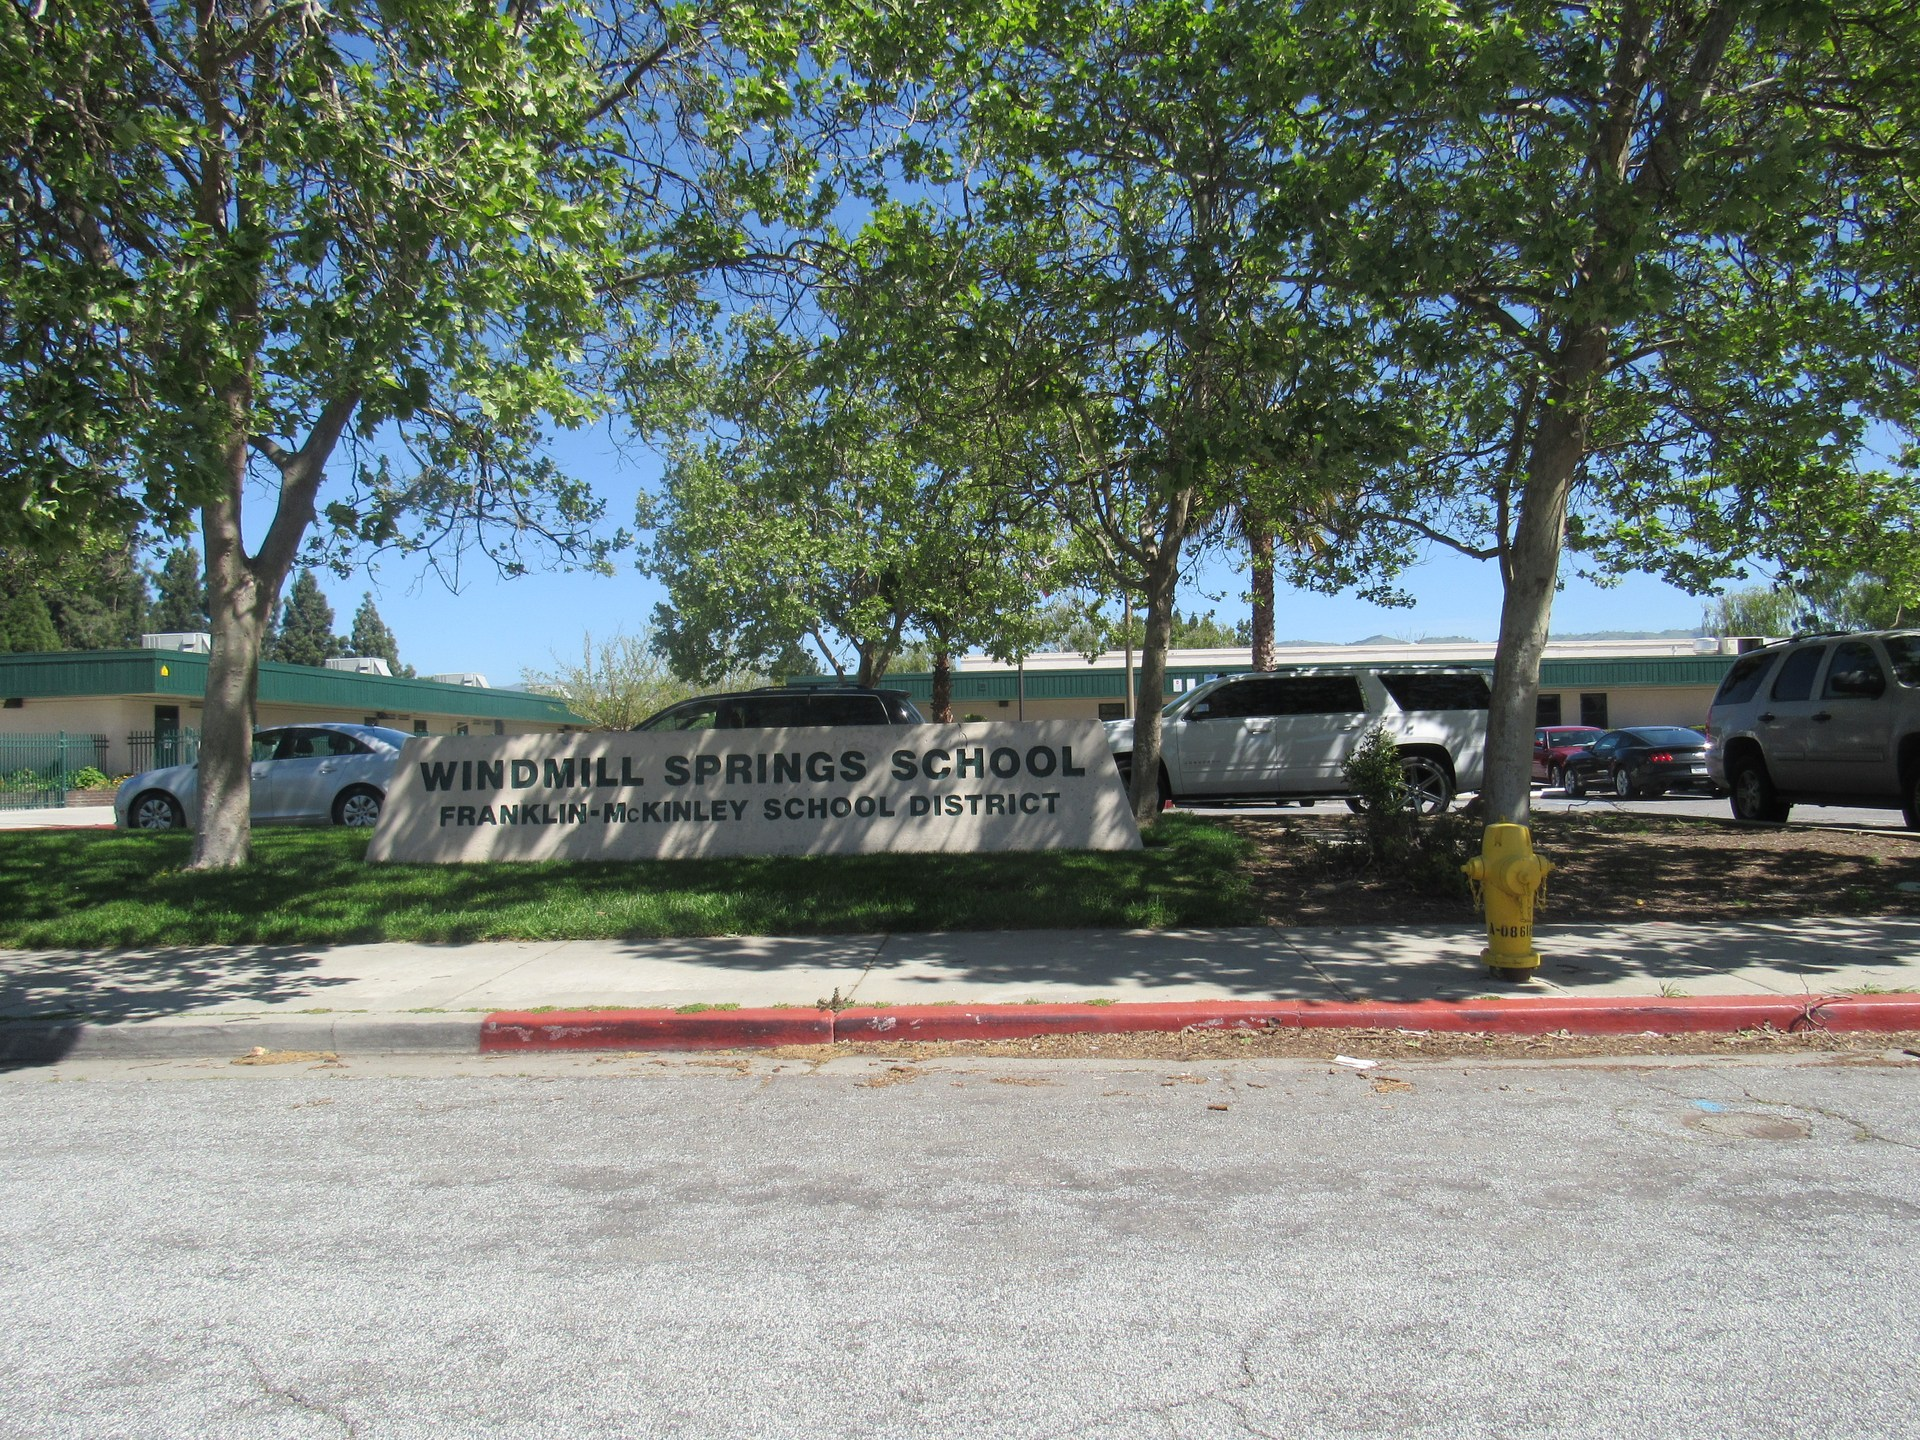 Front of Windmill Springs School